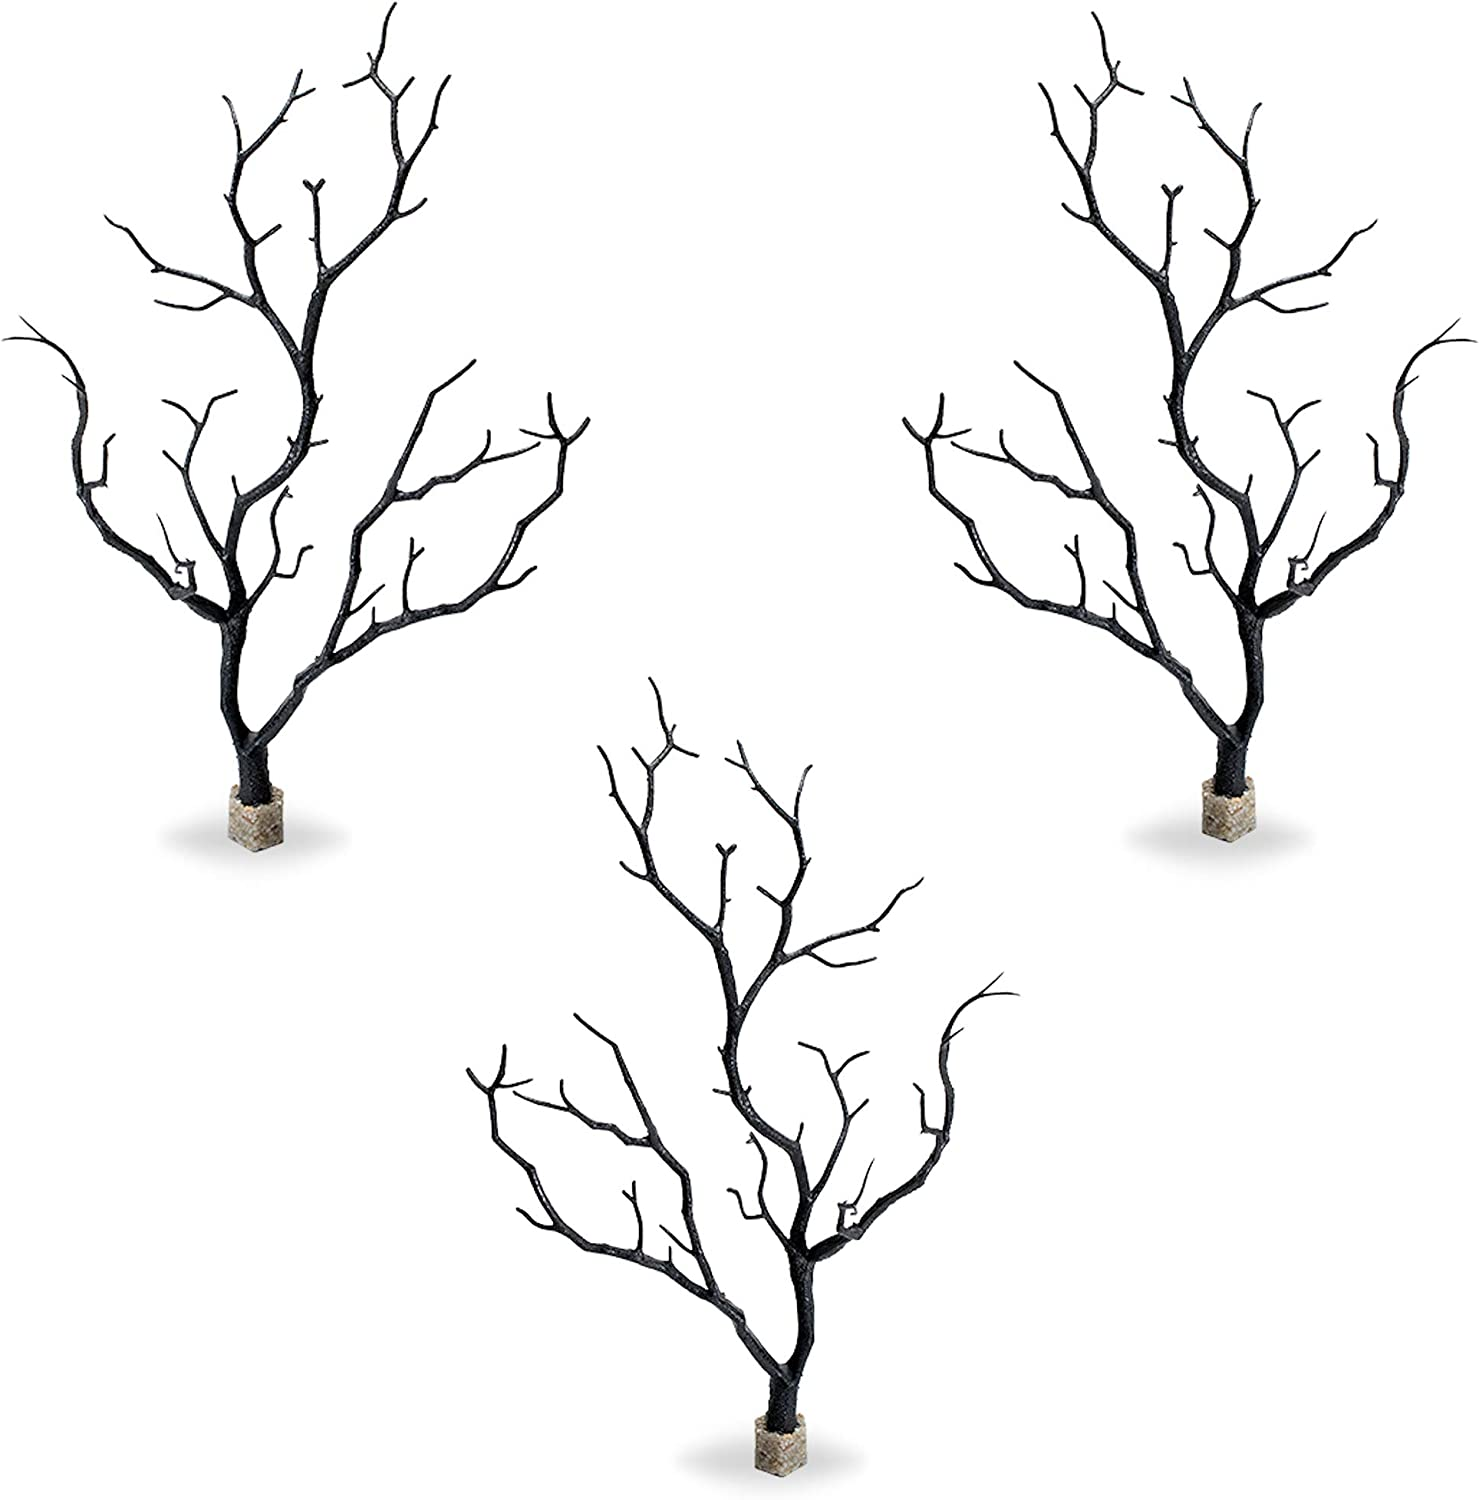 Current USA 12.5'' Tall Black Manzanita Branches Molded Aquarium Decor with Weighted Stone Base   Natural, Lifelike Fish Tank Decoration   Non-Toxic Plastic   3 Pieces